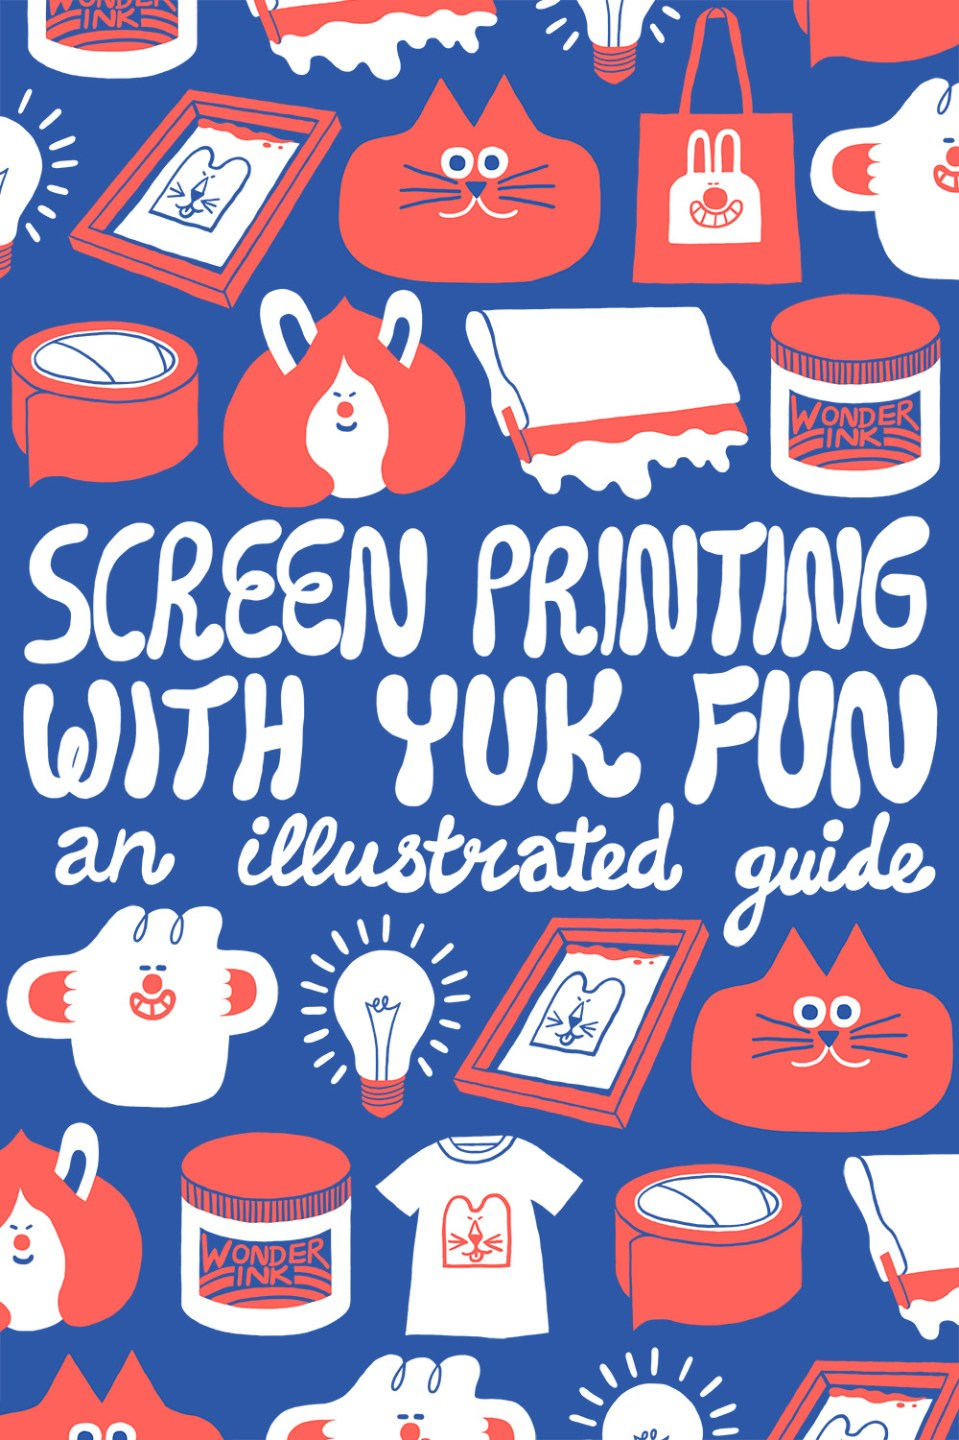 Learn how to screen print at home with YUK FUN